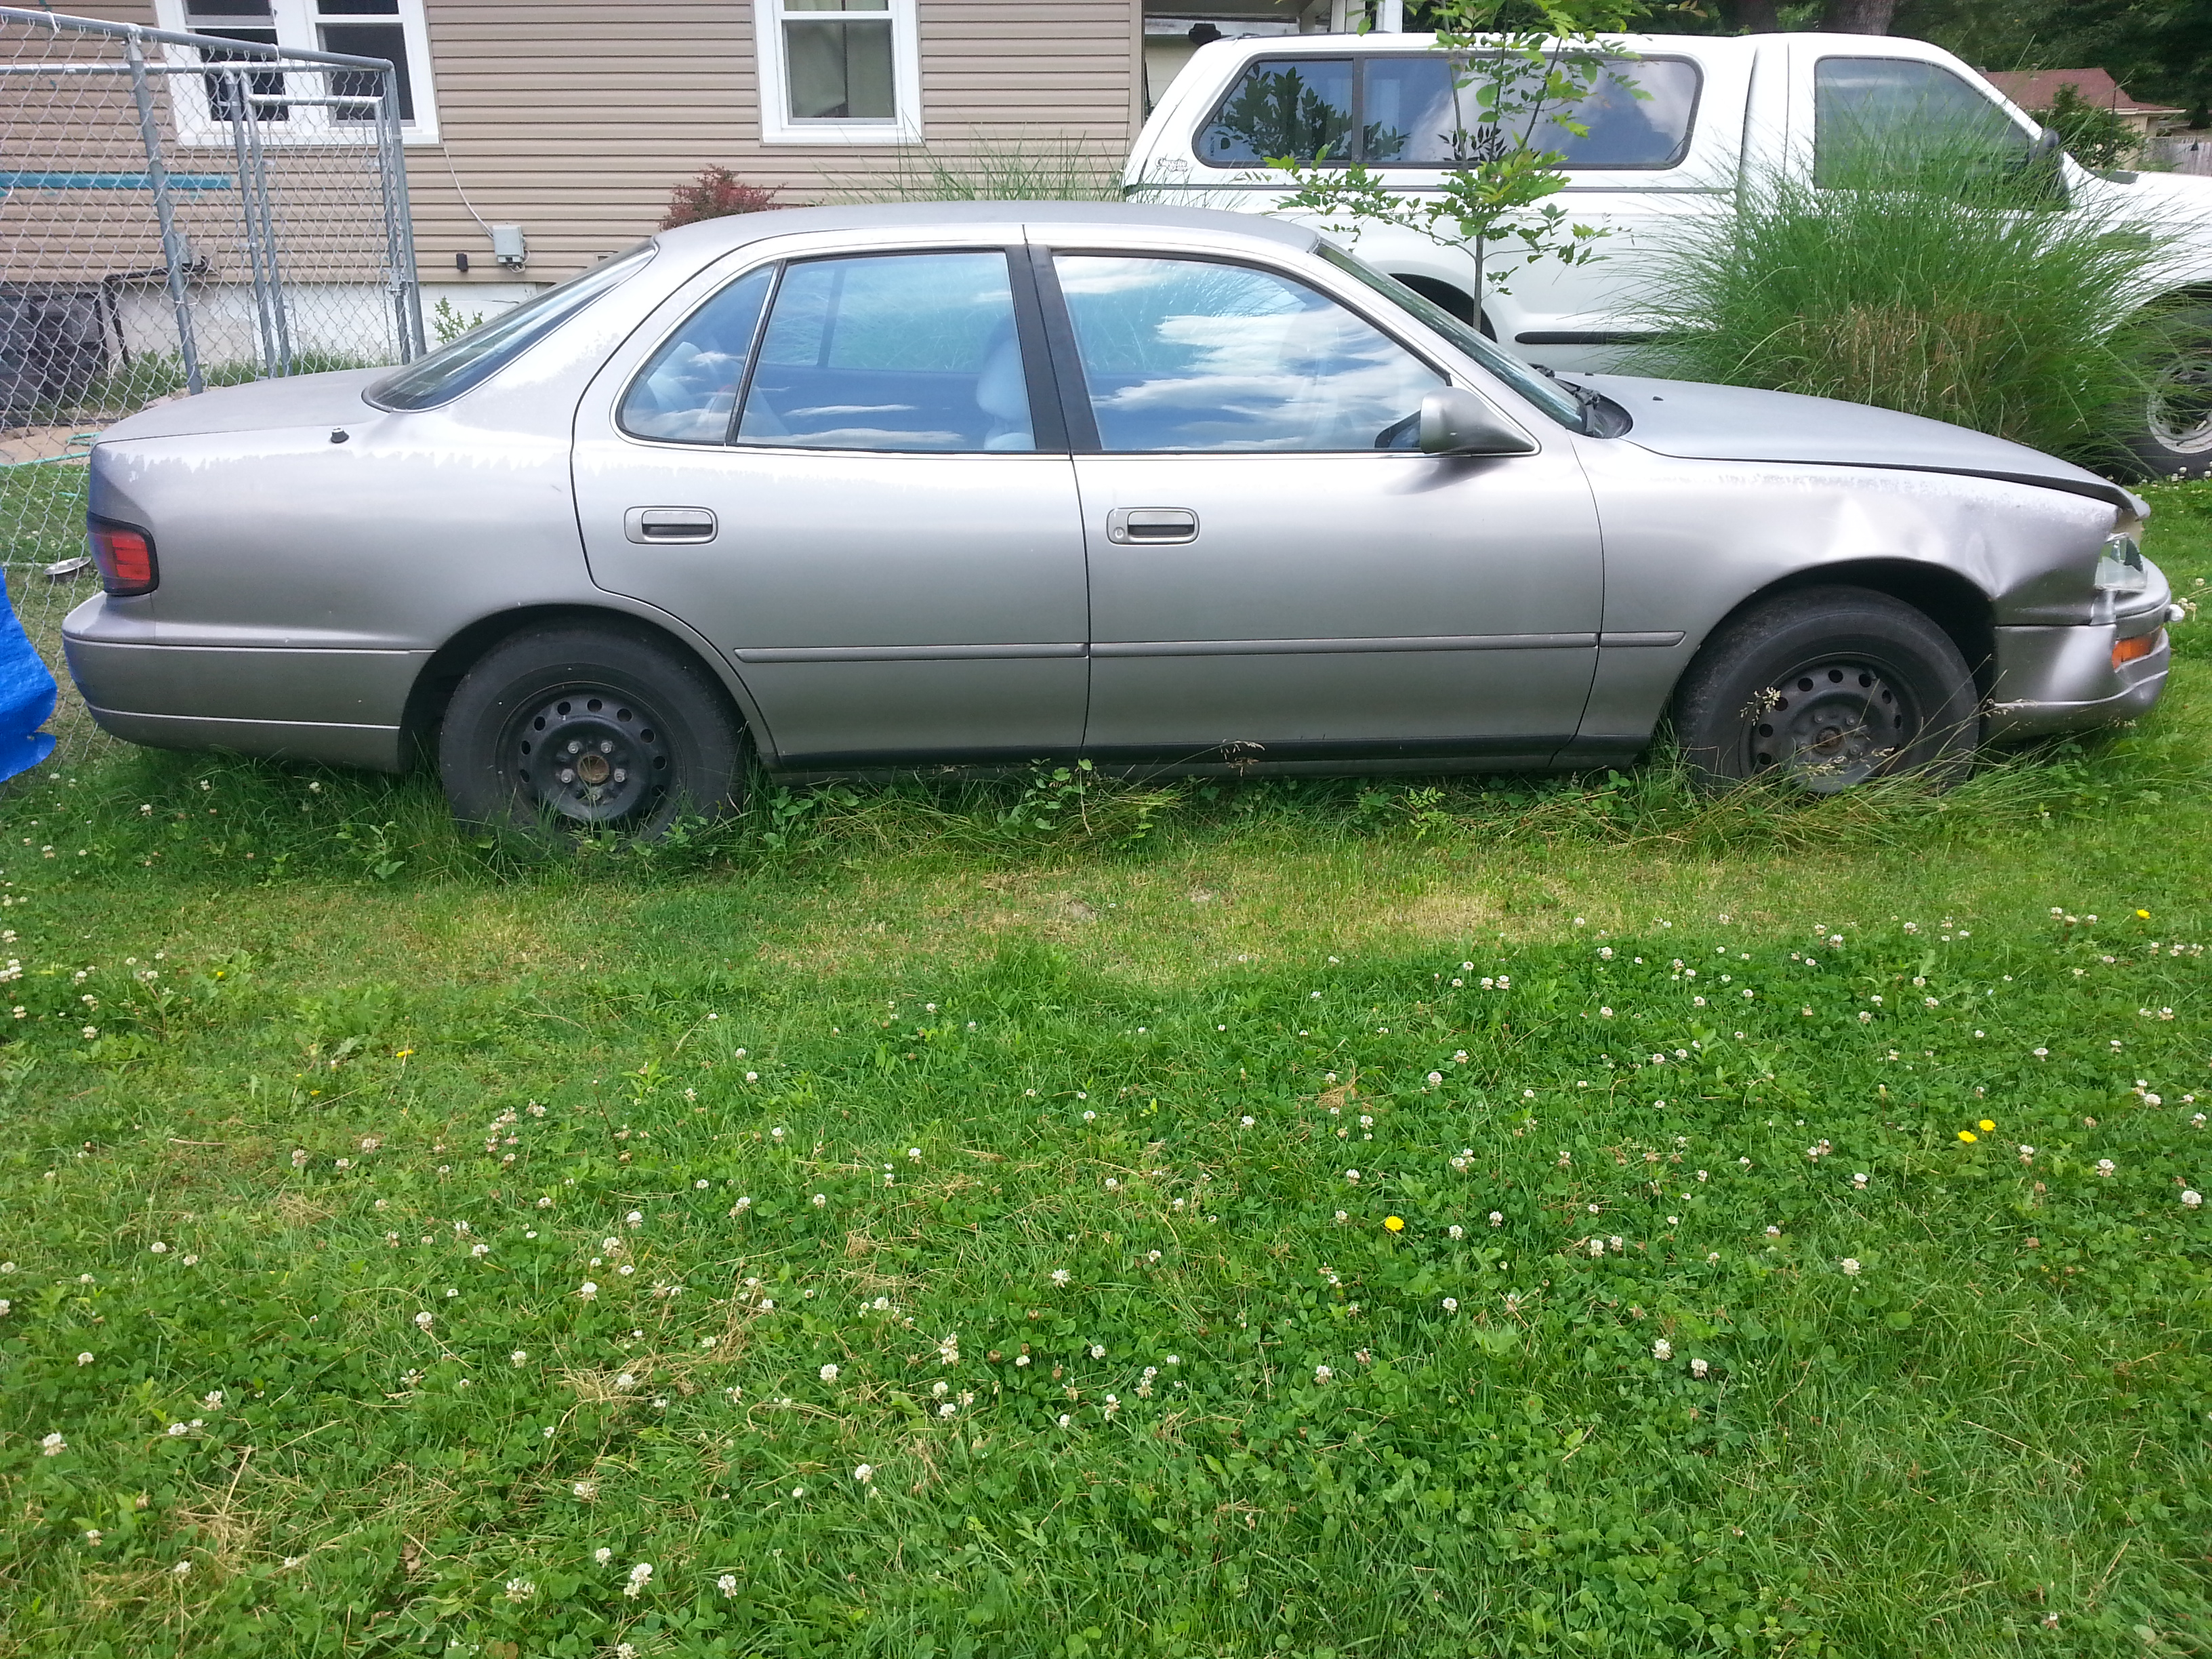 Cash for Cars Bremerton, WA | Sell Your Junk Car | The Clunker Junker